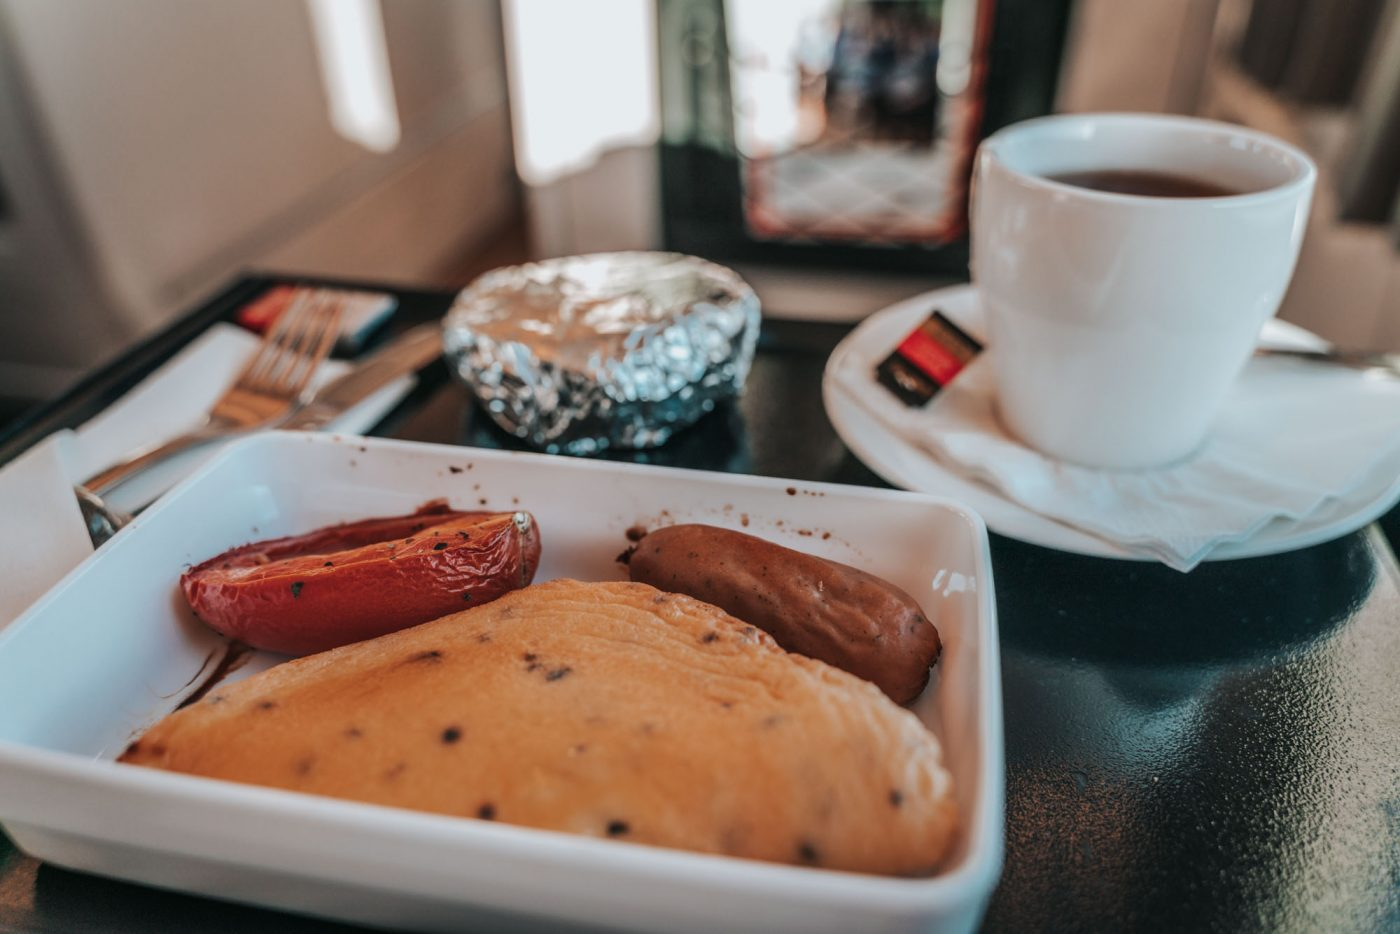 Hot breakfast in RailBed Class on the Spirit of Queensland train